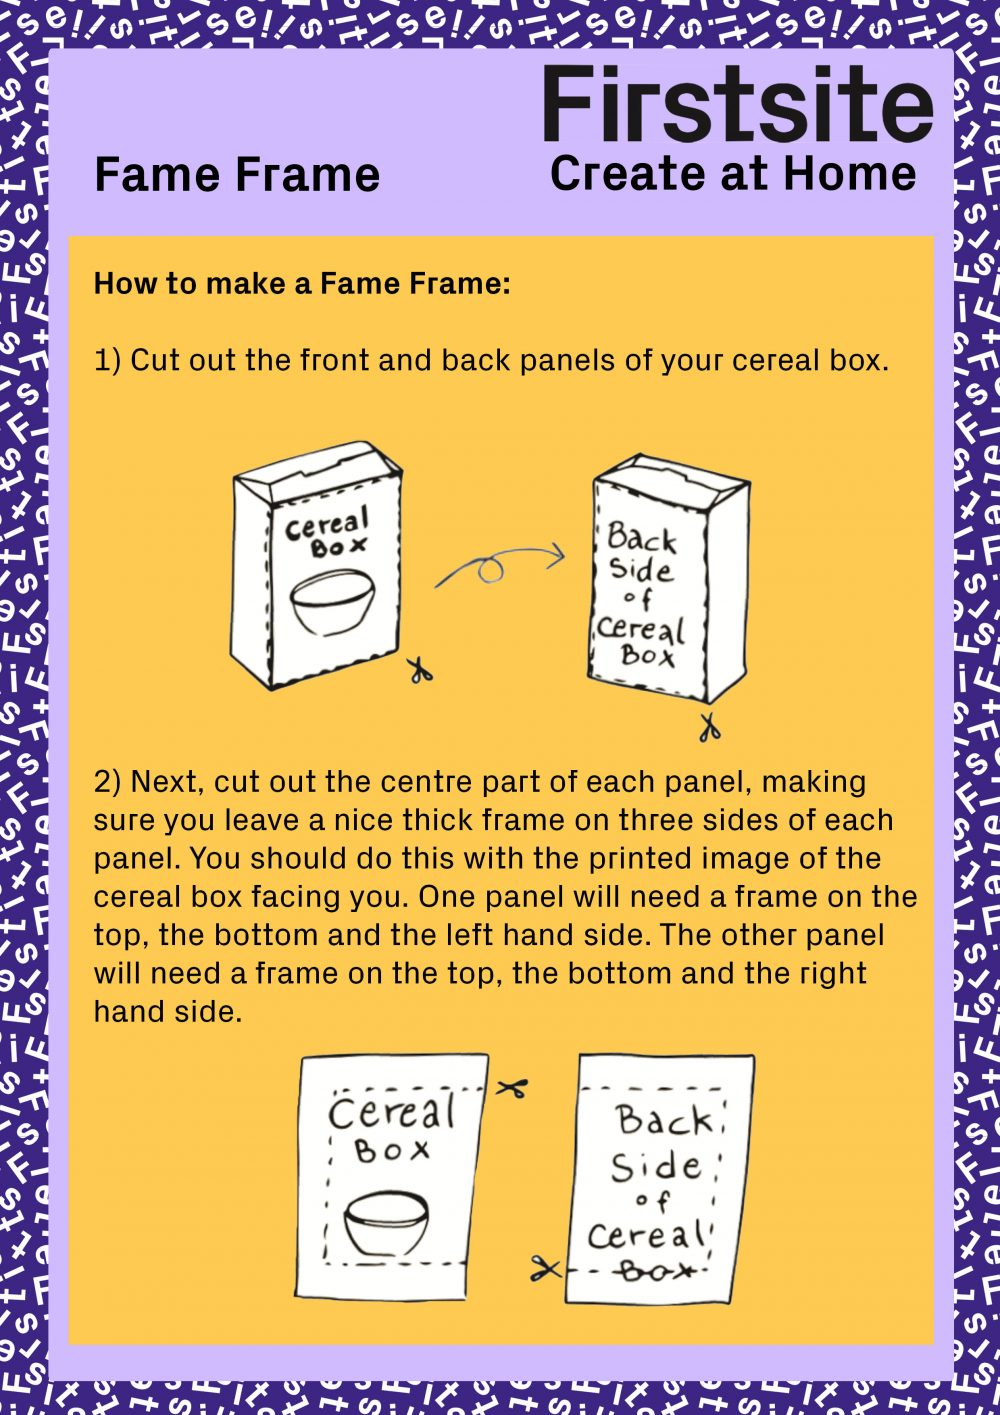 Firstsite Create at Home Fame Frame activity instructions pg 2 of 3